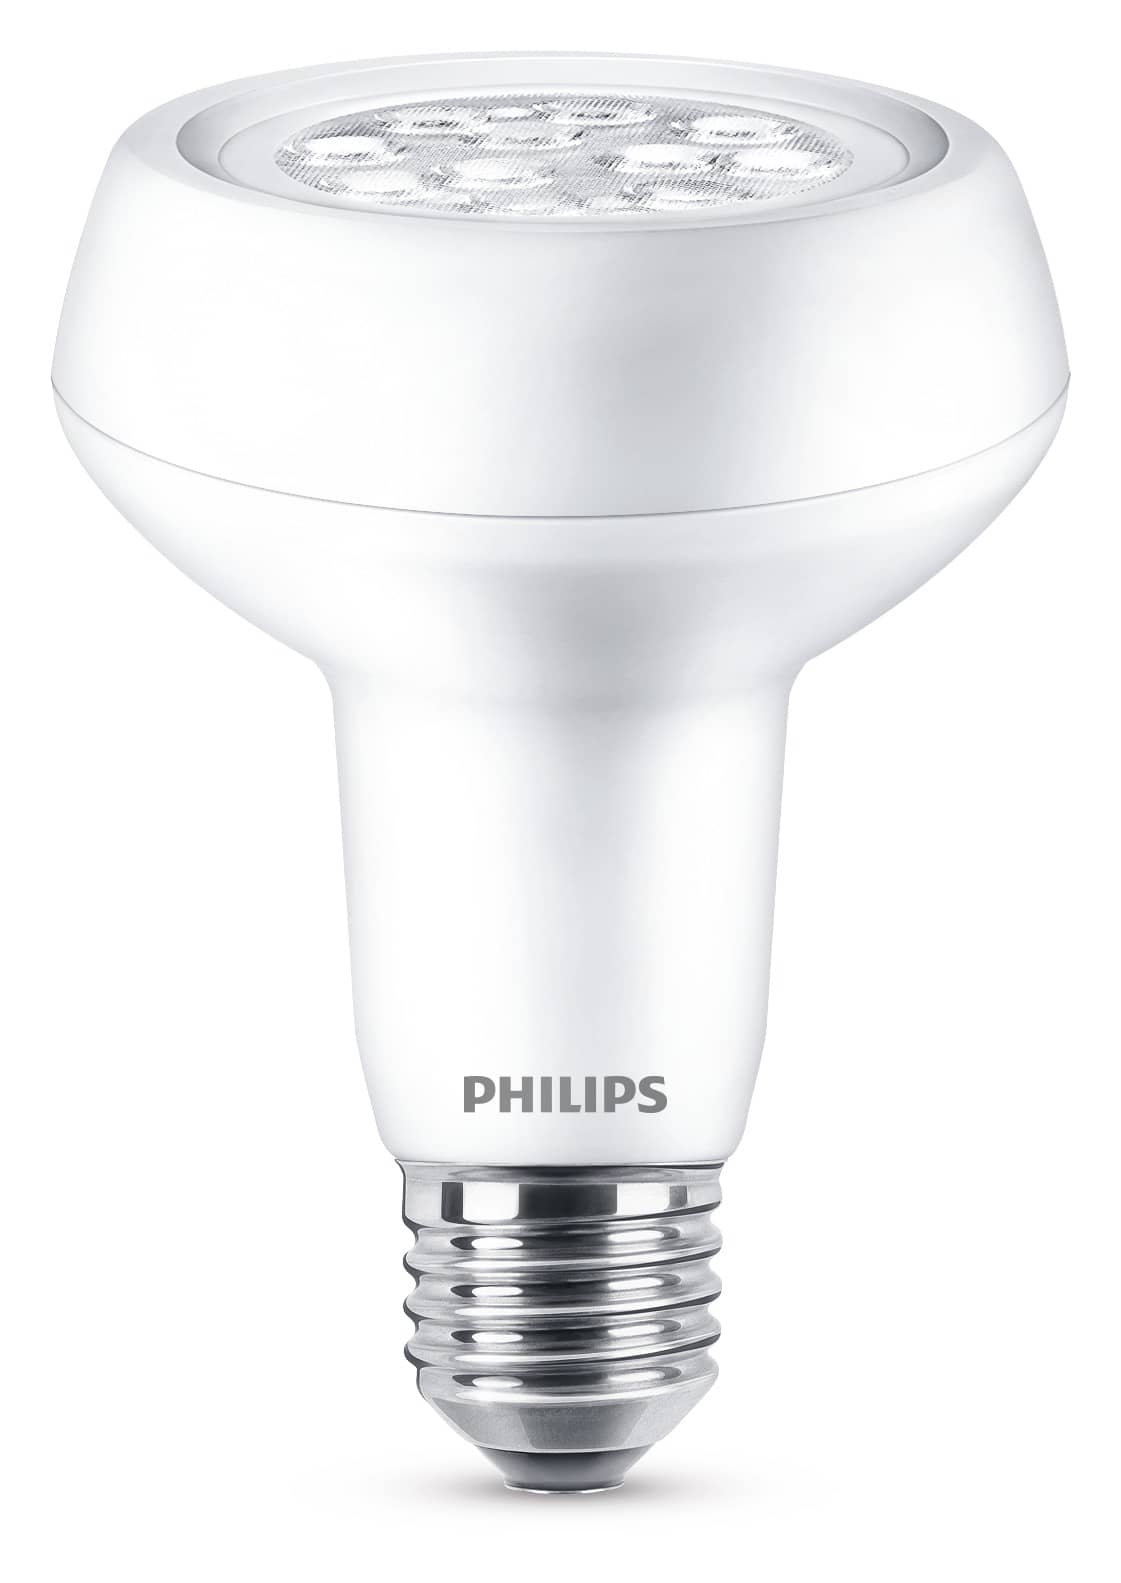 philips e27 r80 led reflektor 3 7w 360lm warmweiss. Black Bedroom Furniture Sets. Home Design Ideas